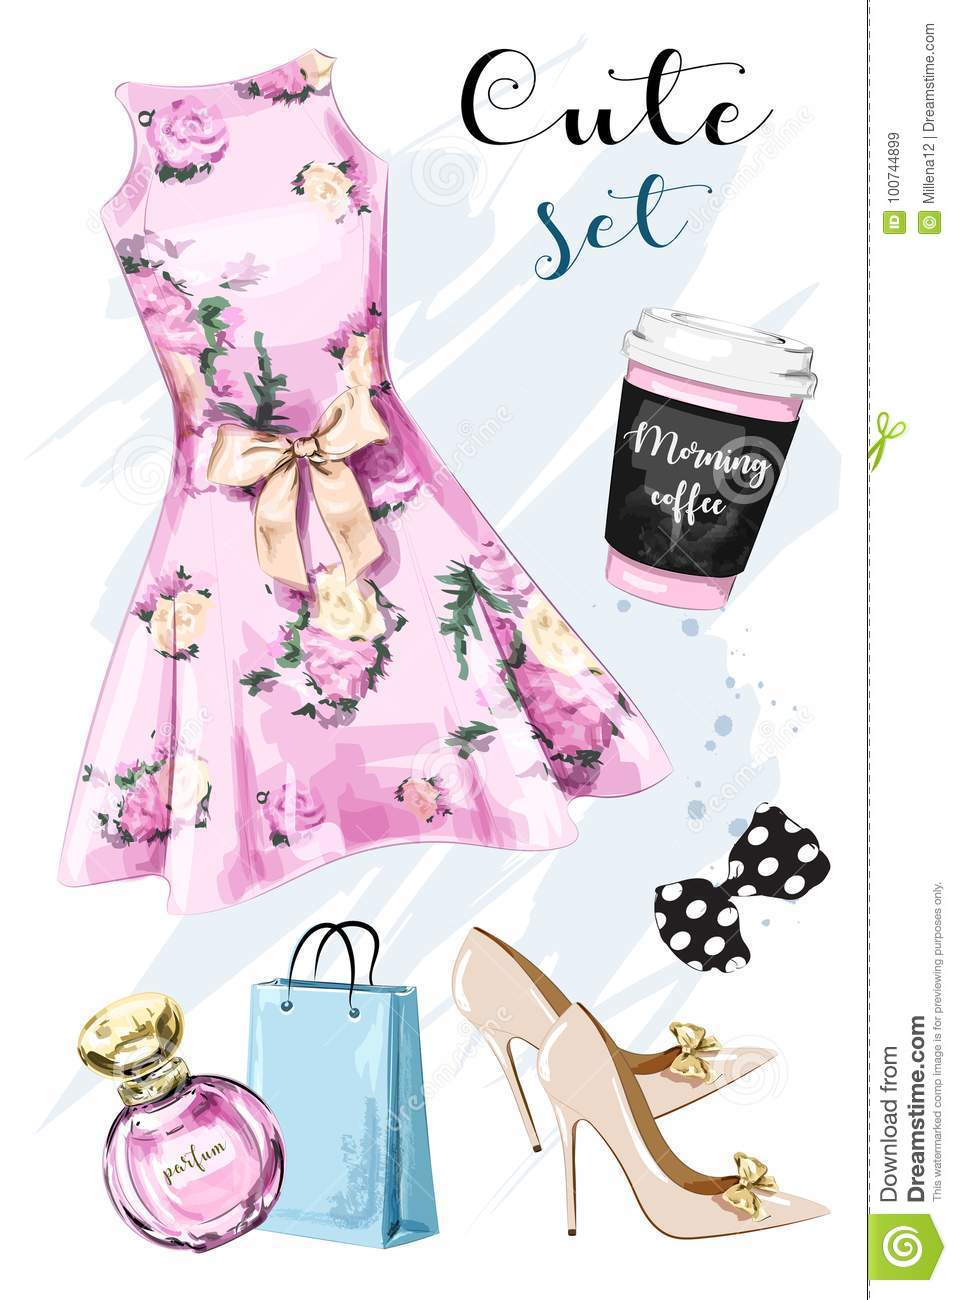 Clothing Cartoons Illustrations Amp Vector Stock Images